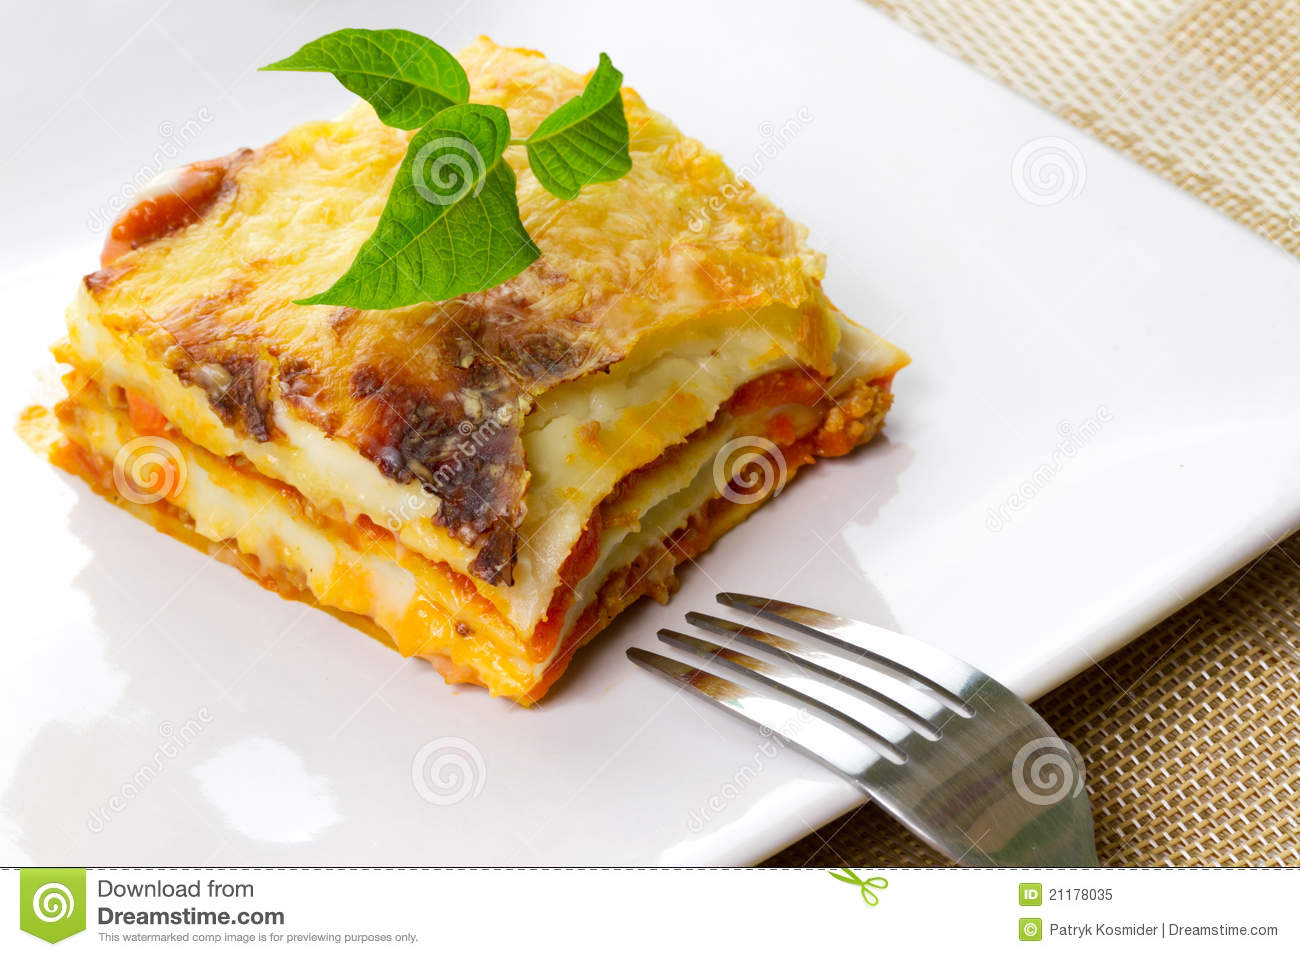 Italian lasagna on plate